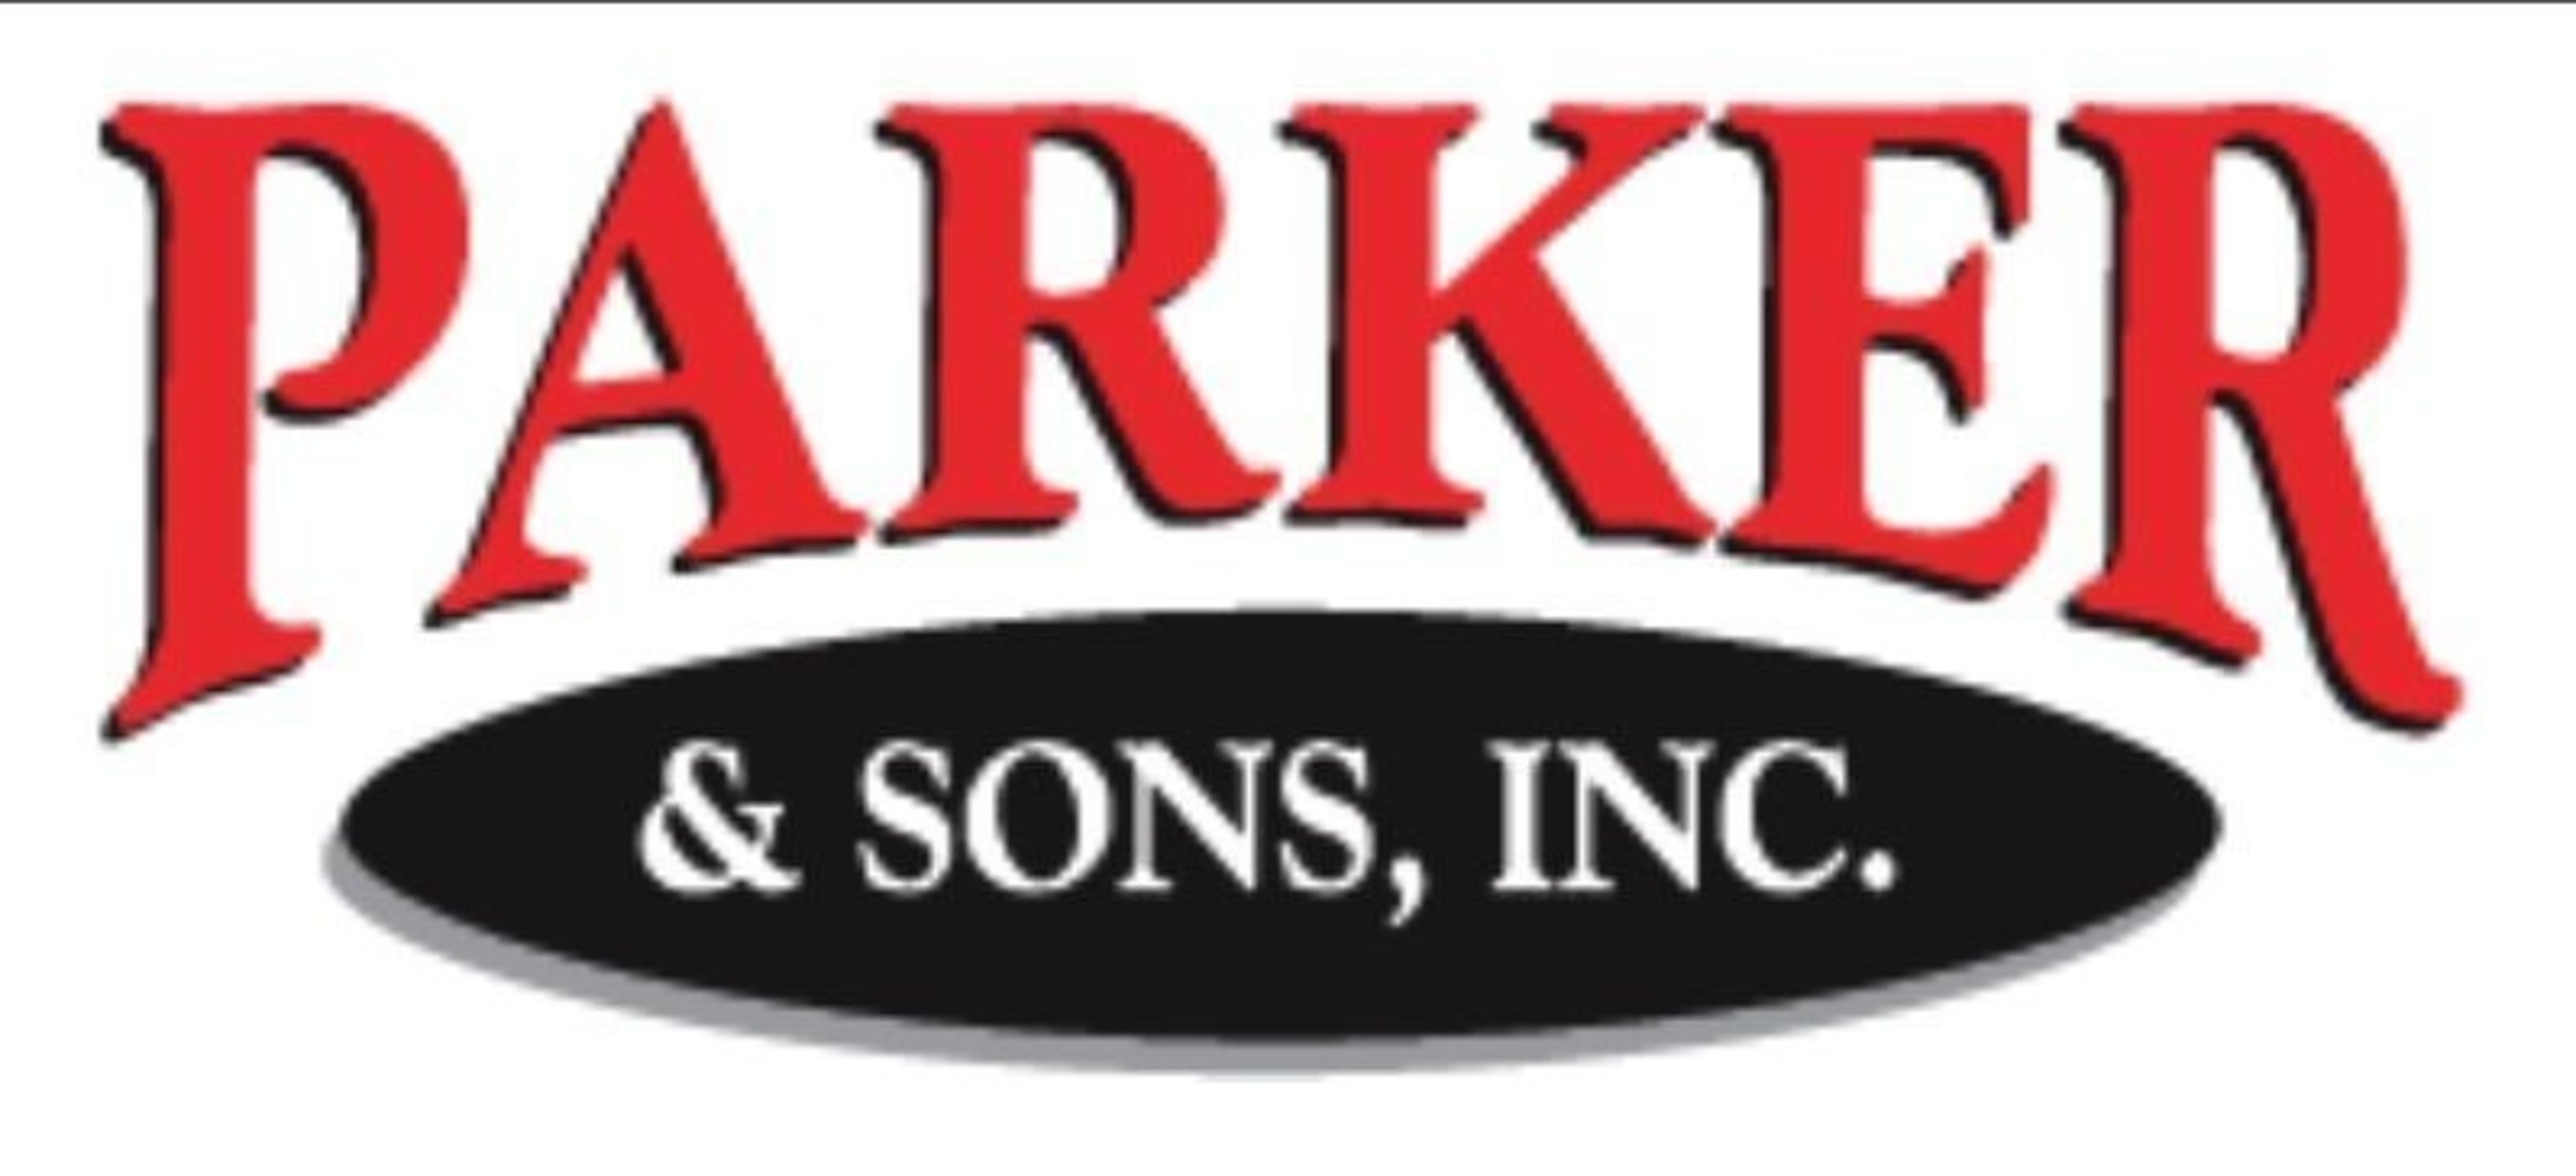 Parker & Sons Extends Generous Scholarship to Student Athletes